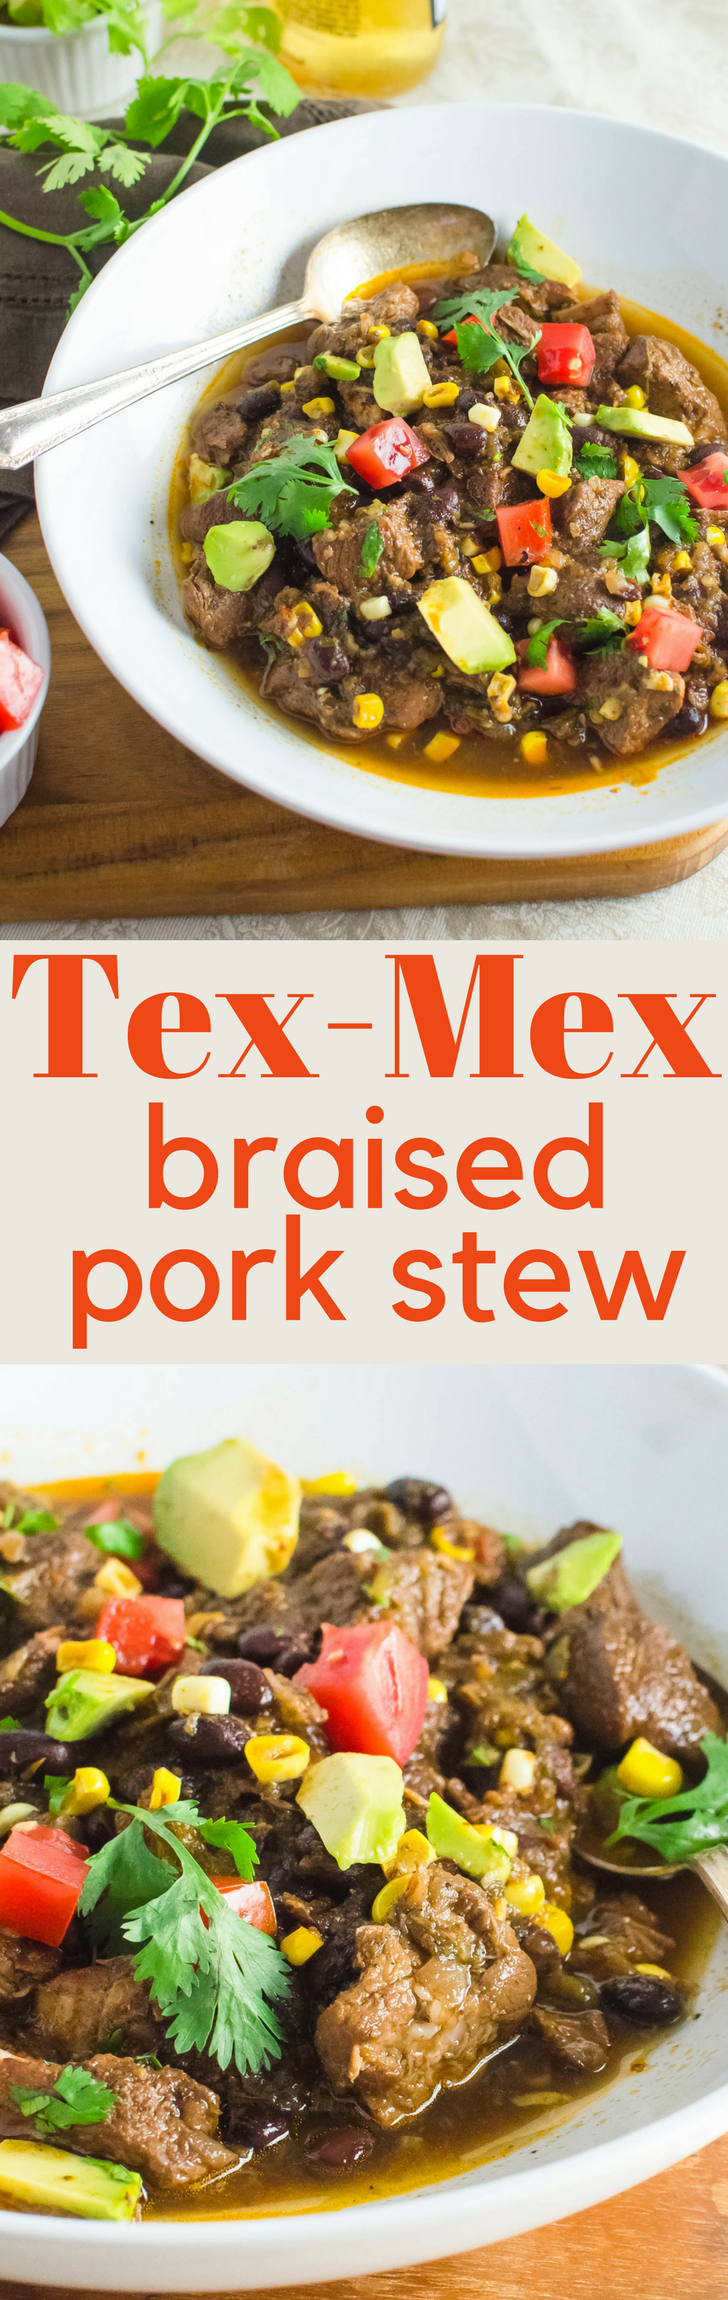 Need an easy meal that feeds a crowd? This hearty Tex-Mex Braised Pork Stew has hatch chiles, creamy black beans and fresh corn for a warm, homey meal.